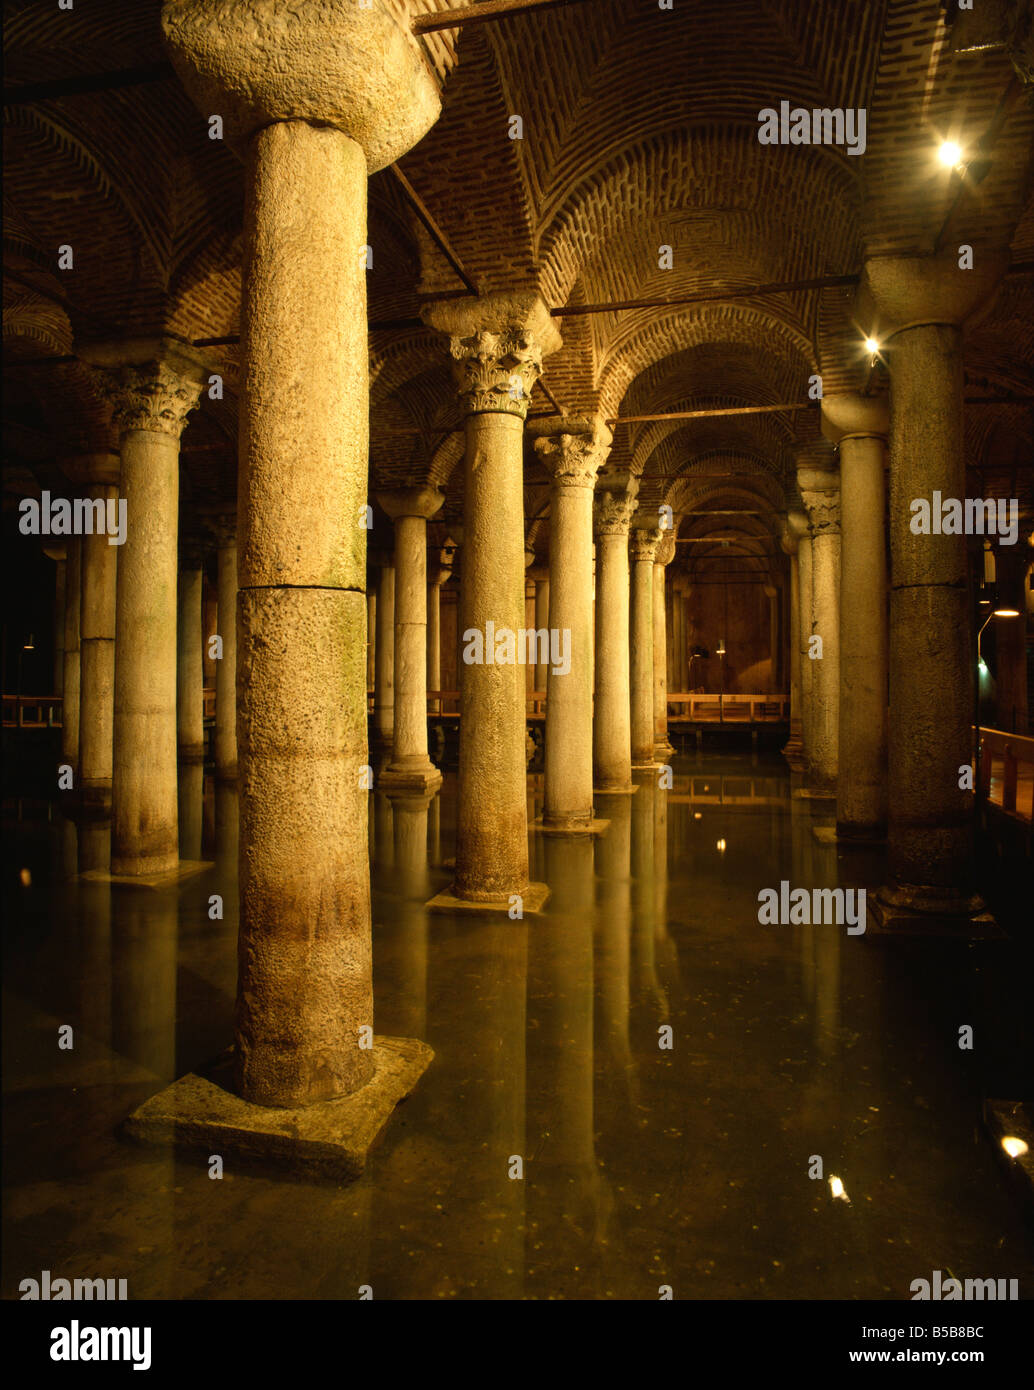 Yerebatan Saray underground cistern Istanbul Turkey Europe Stock Photo